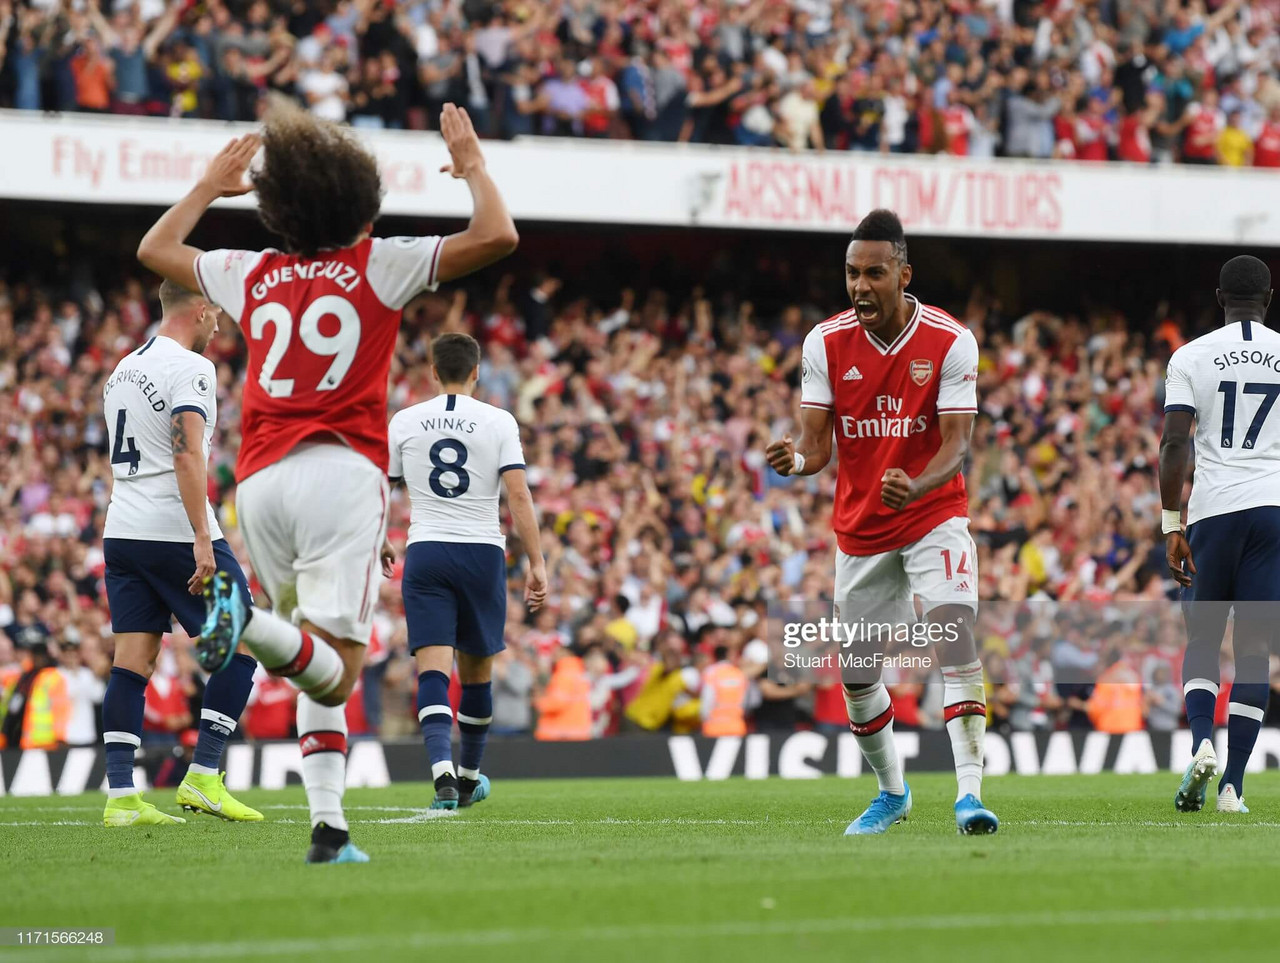 Arsenal 2-2 Tottenham Hotspur: Gunners comeback to earn a point in pulsating clash